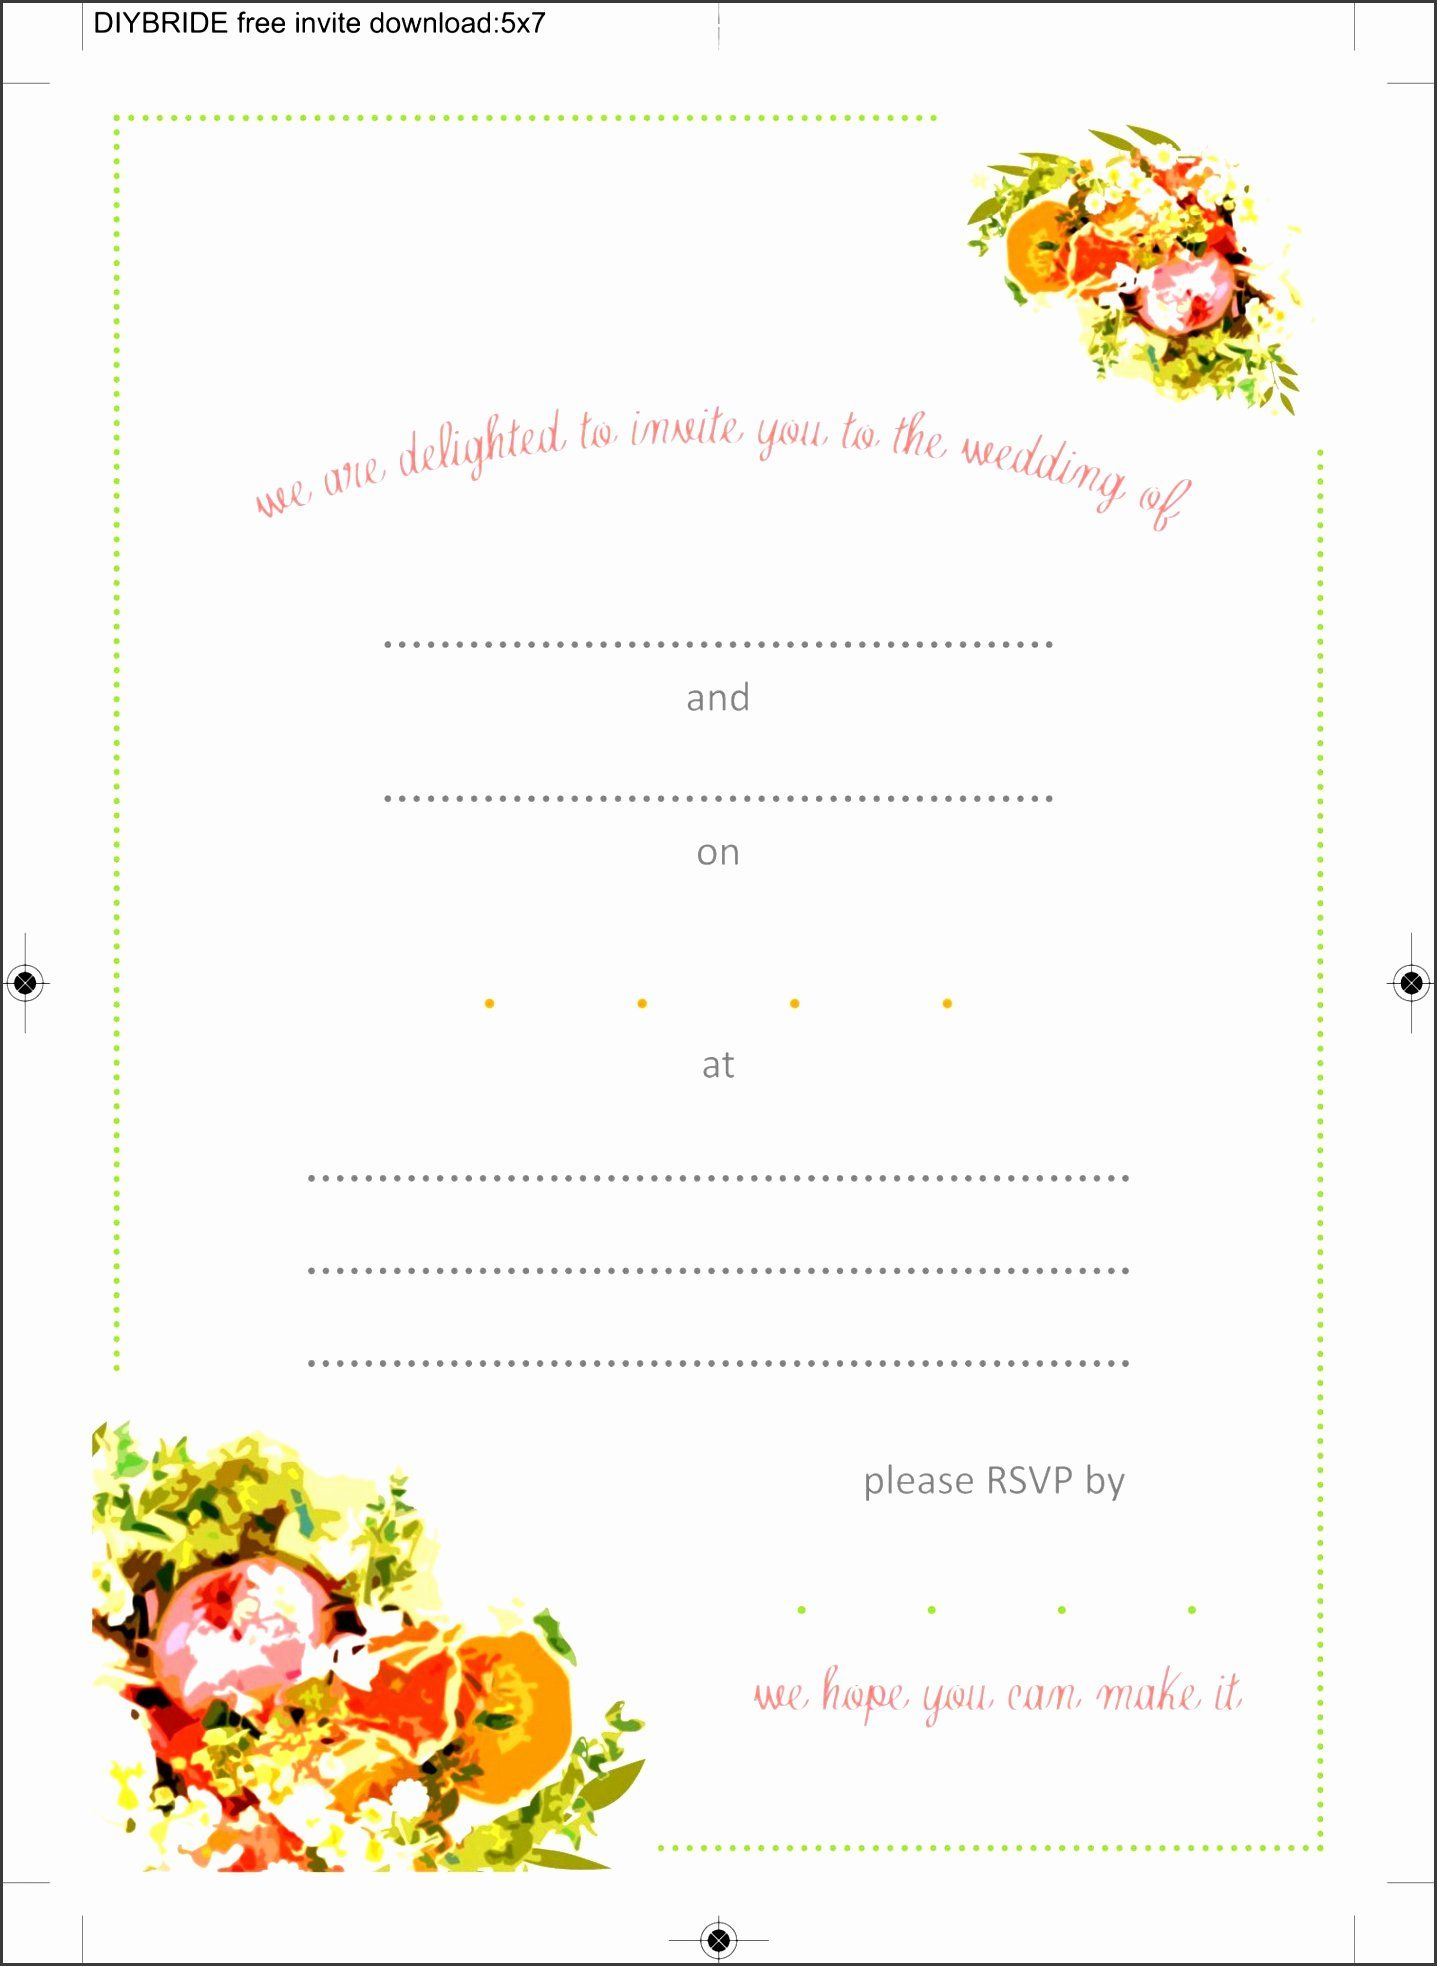 Party Invitation Template Microsoft Word Lovely 10 Ms Word Birthday Party Invitation T Party Invite Template Christmas Invitations Template Invitation Template - ms word invitation templates free download